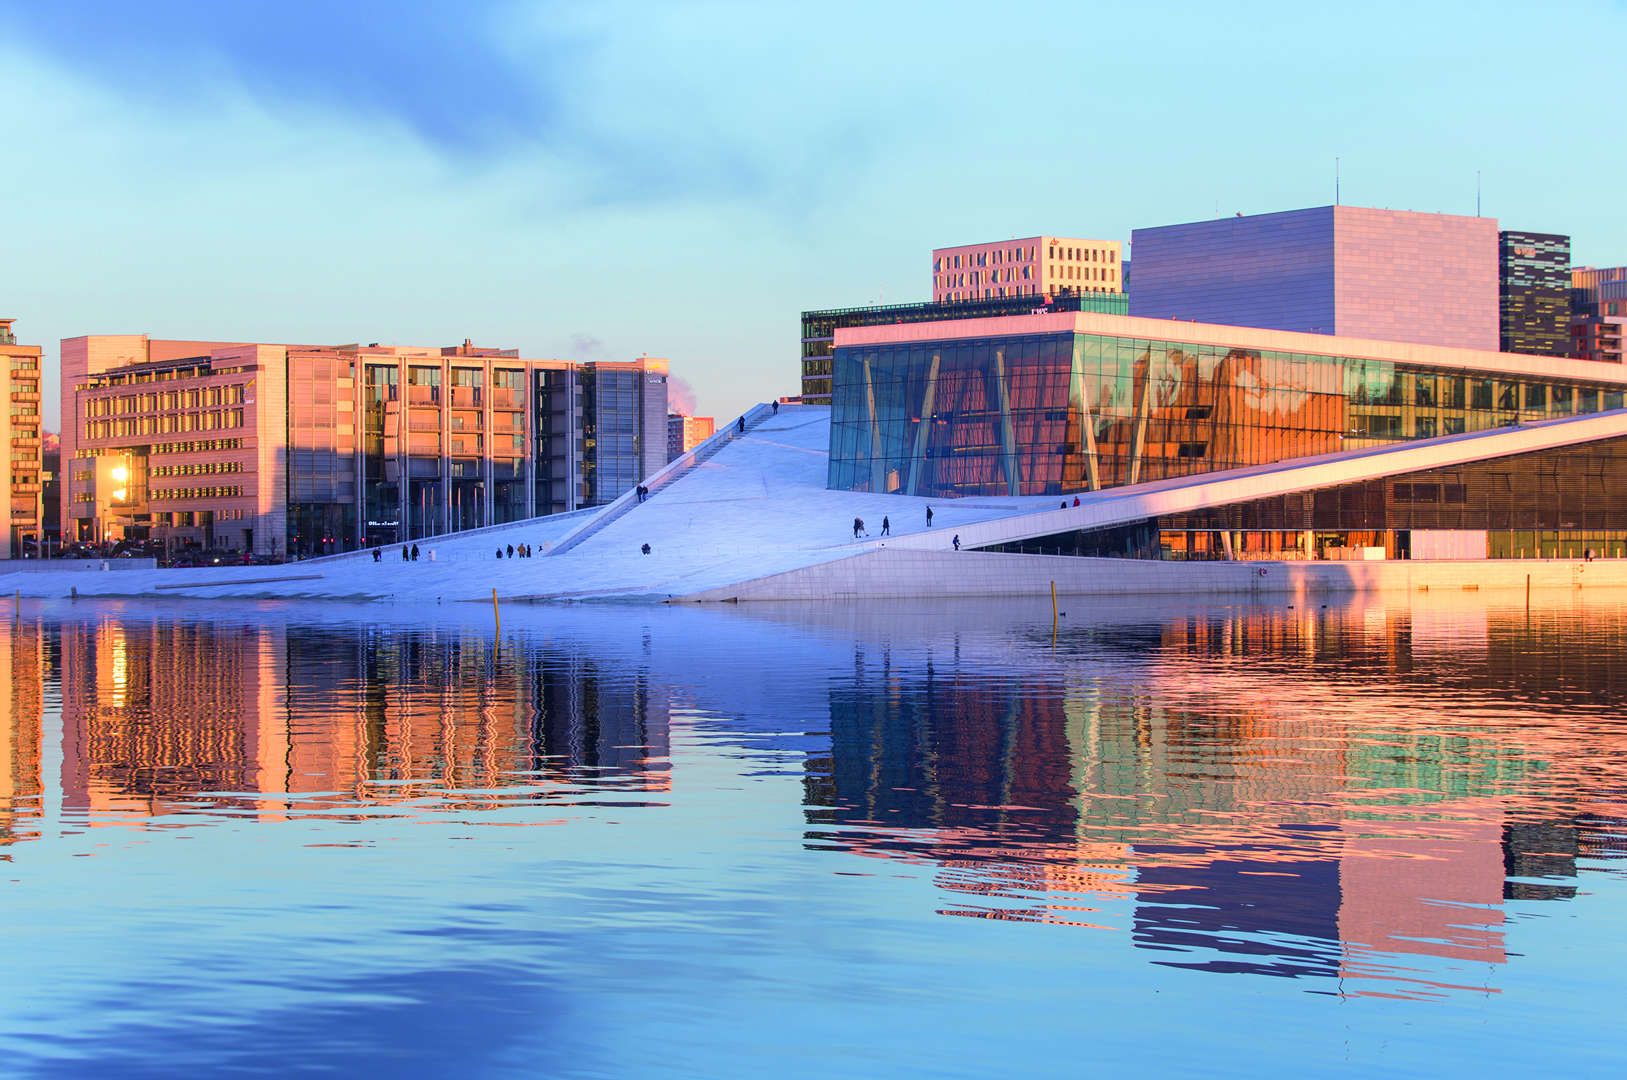 Slide 3 dari 21: The clean diagonals of Oslo Opera House have been a fixture